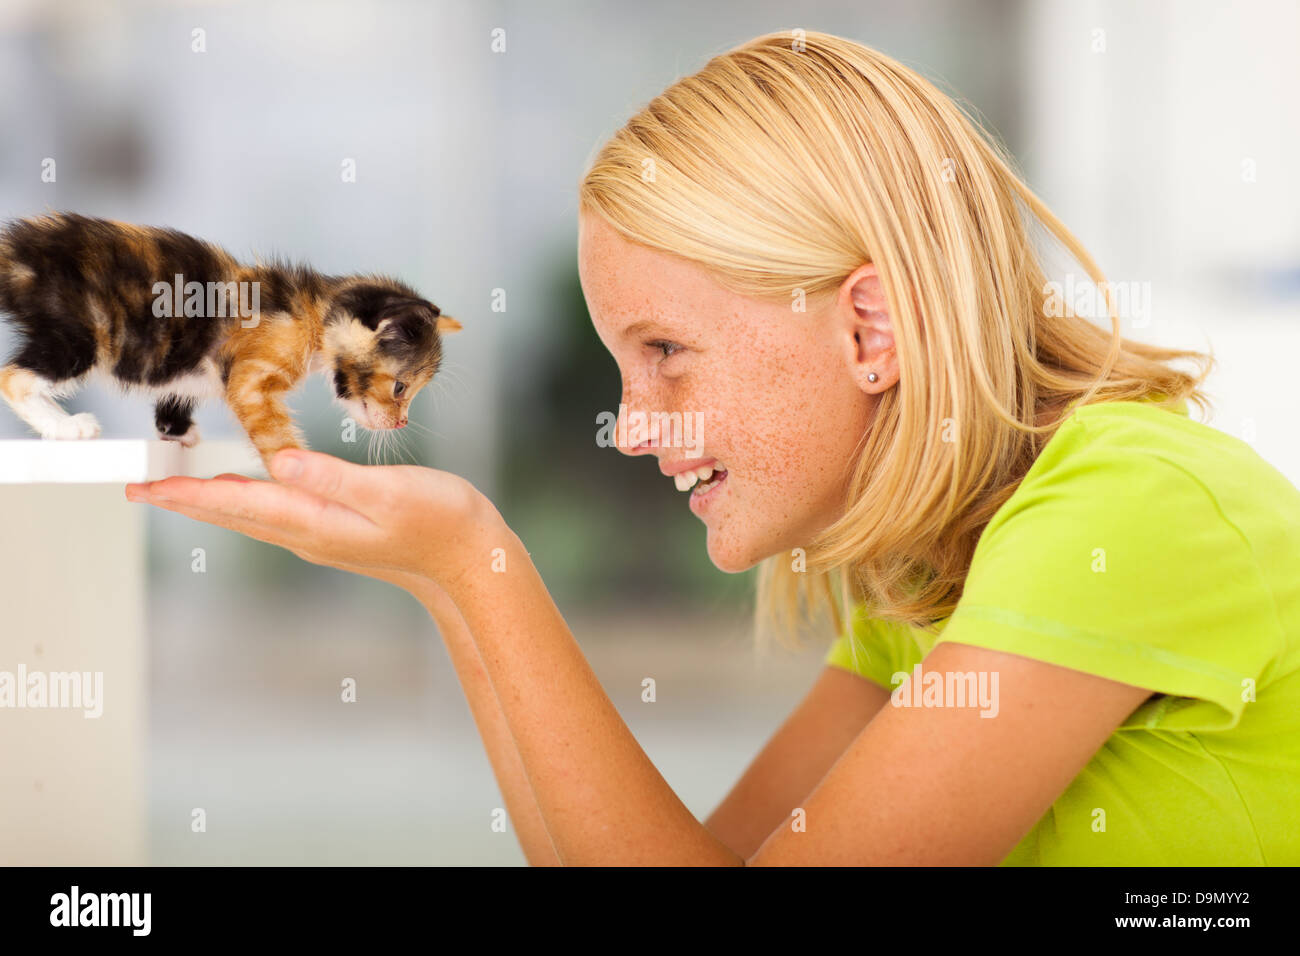 loving teen girl playing with pet kitten at home - Stock Image